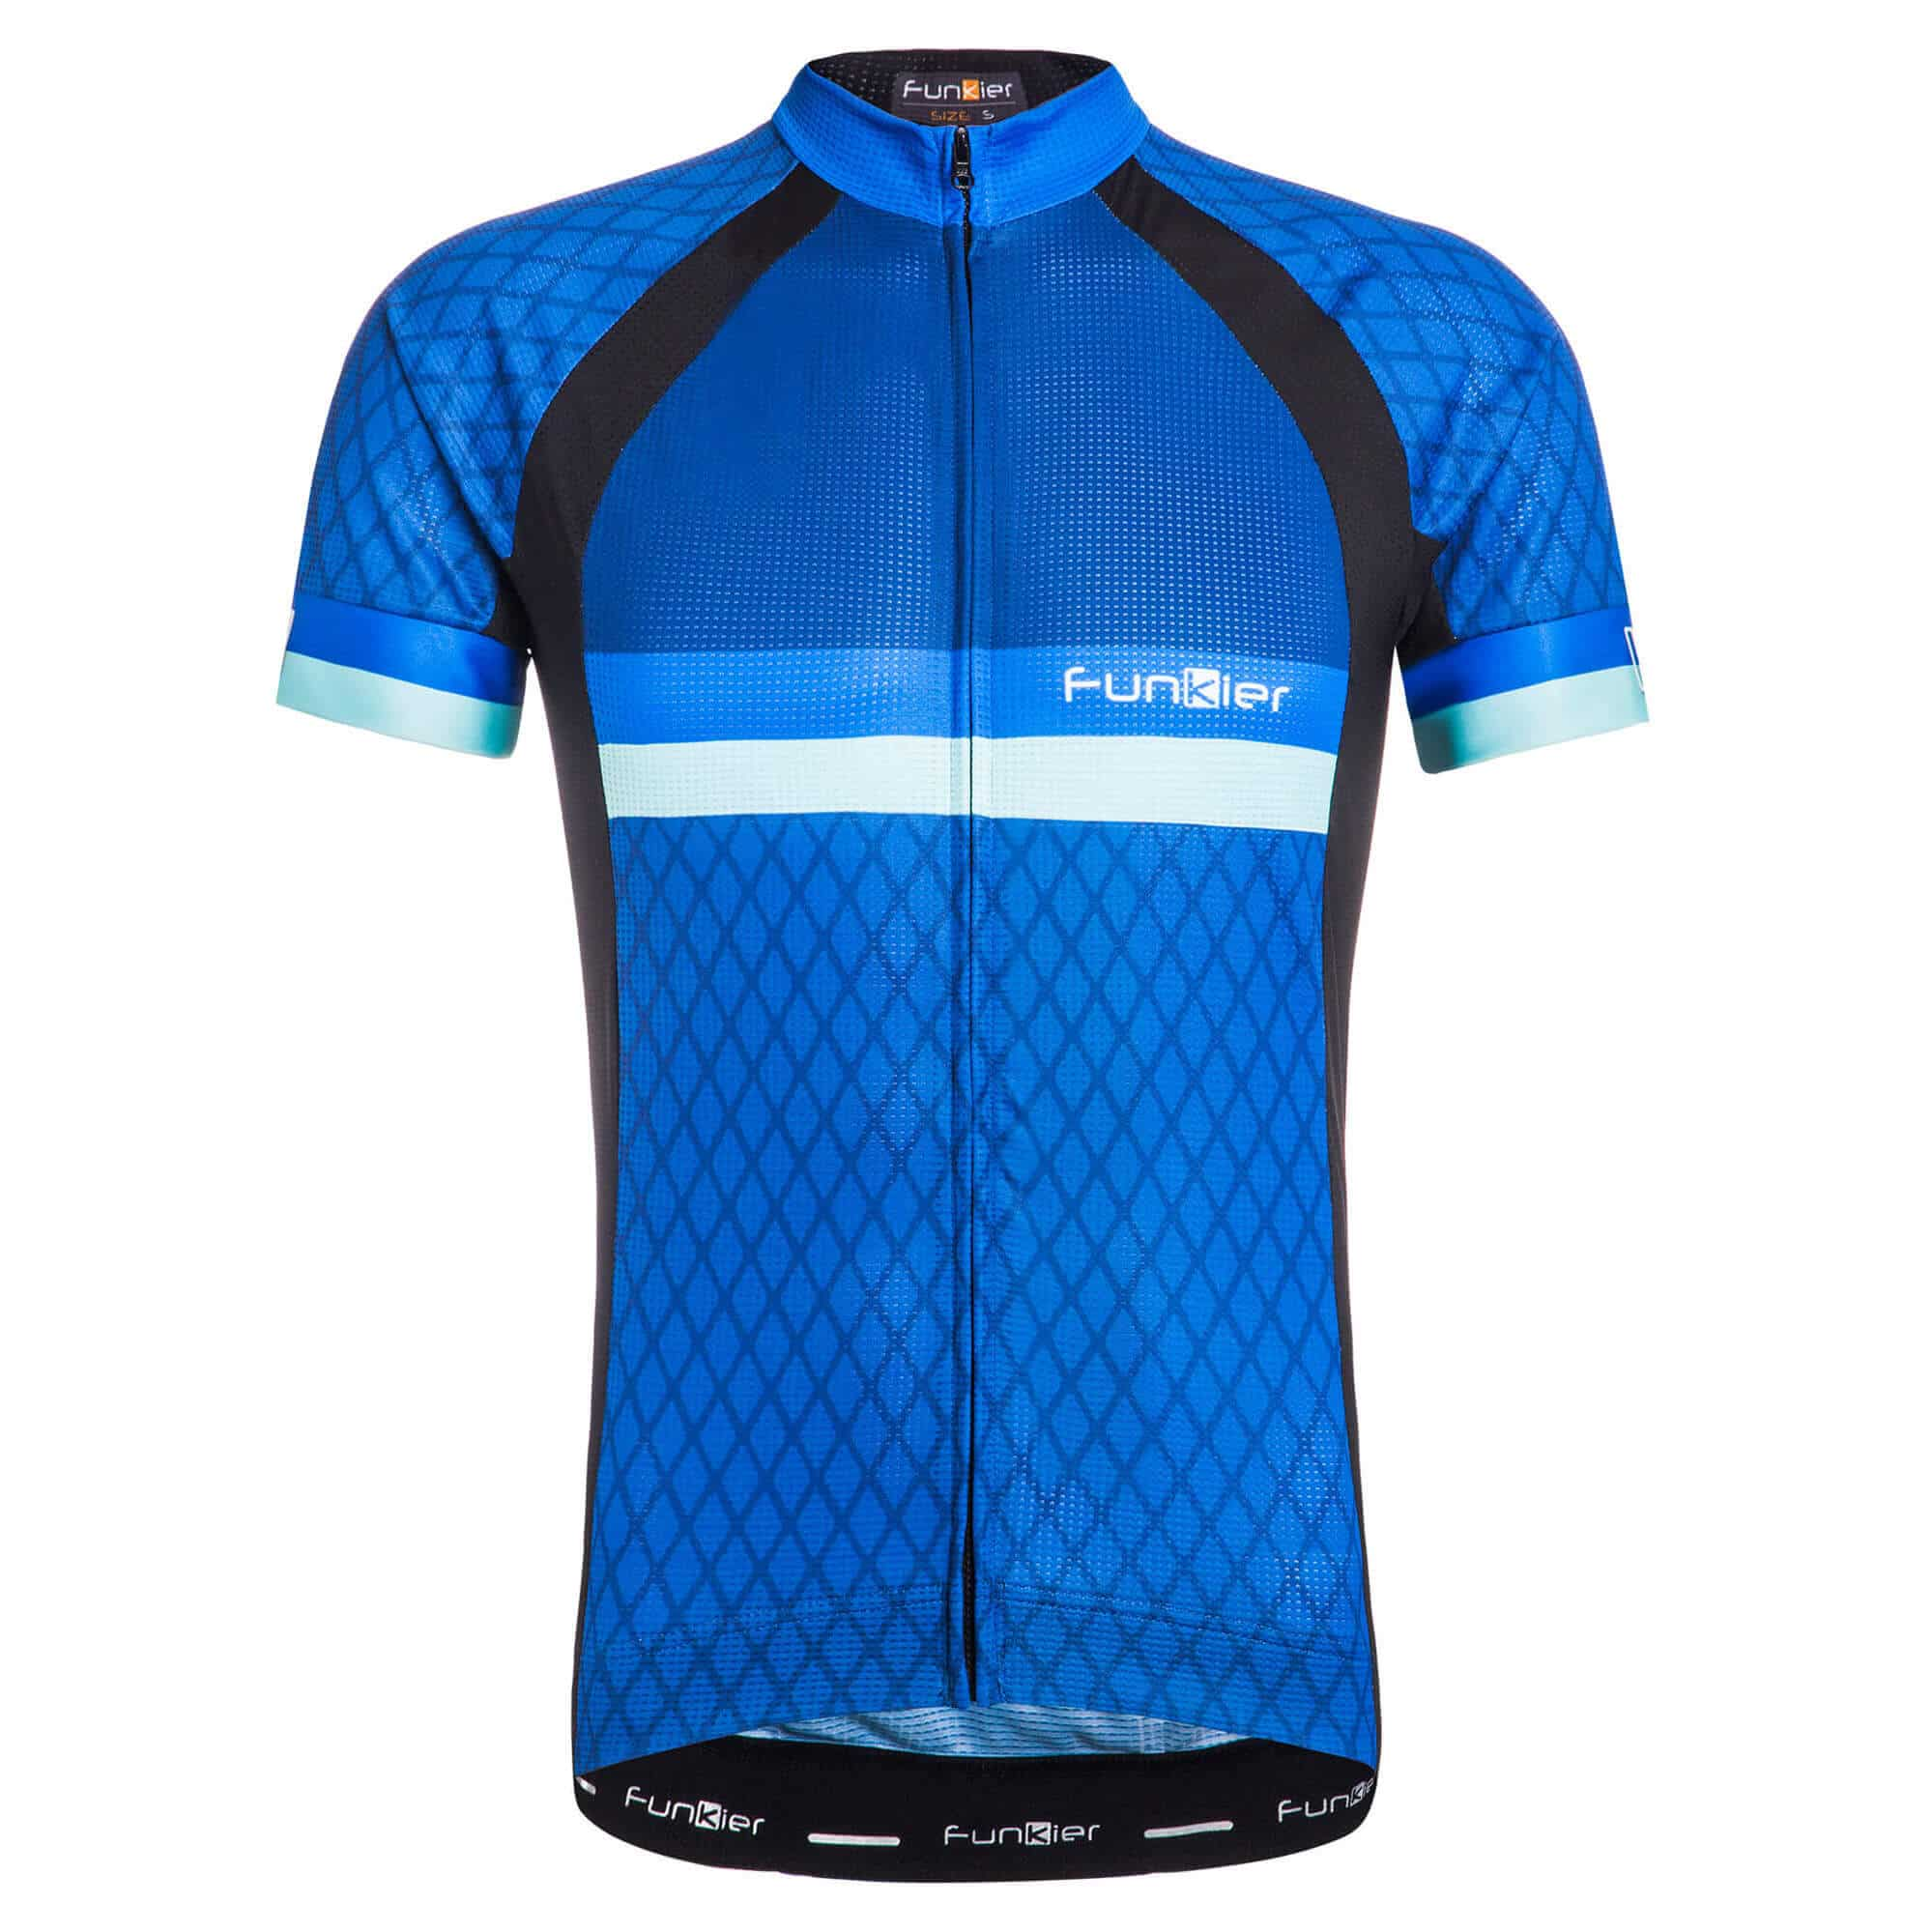 Funkier - High performance cycling apparel at an affordable price. 08bdbc4ef